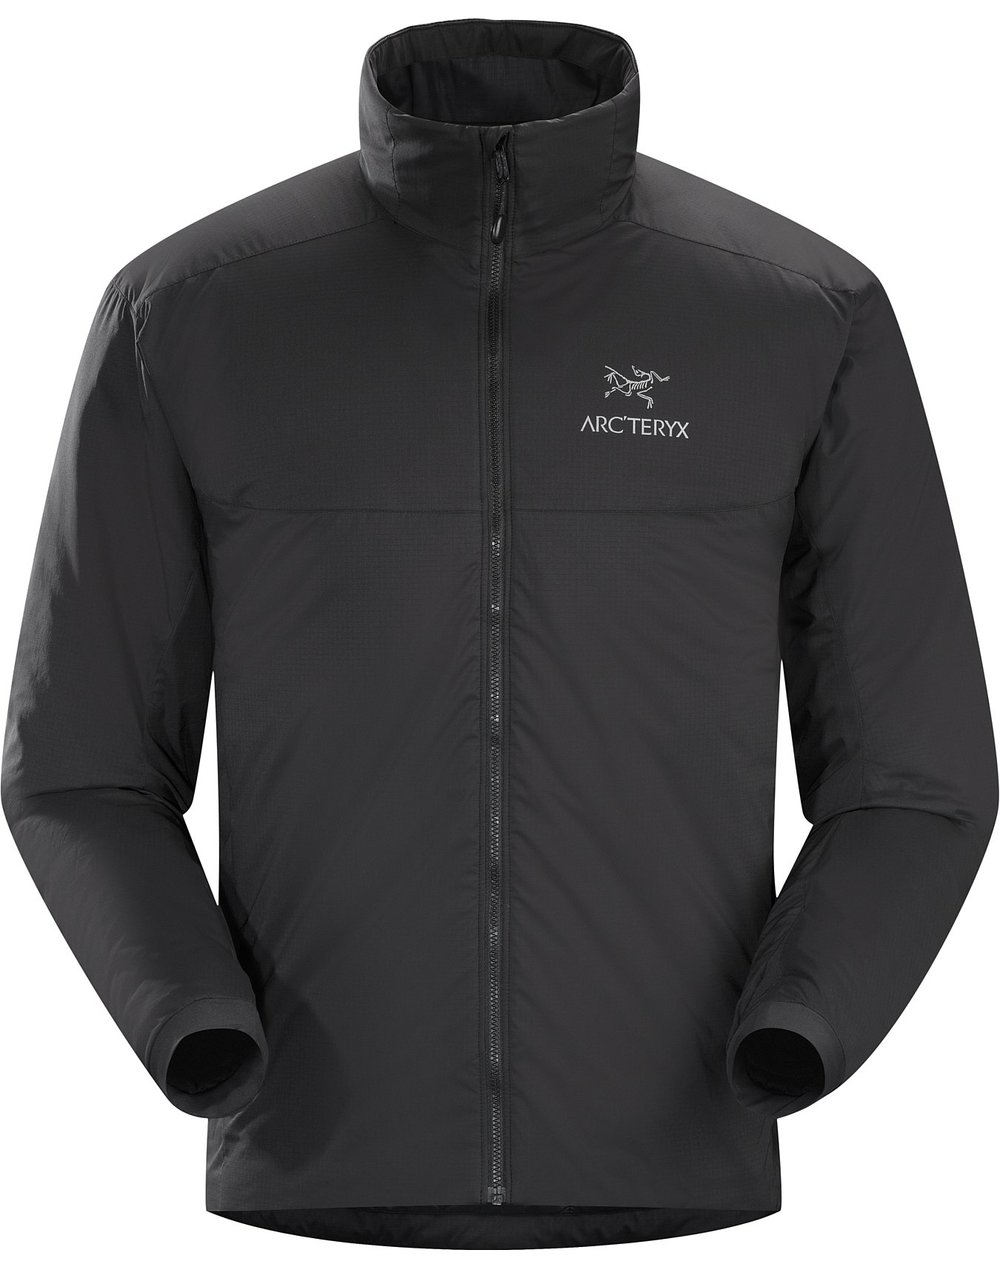 Atom-AR-Jacket-Black.jpg